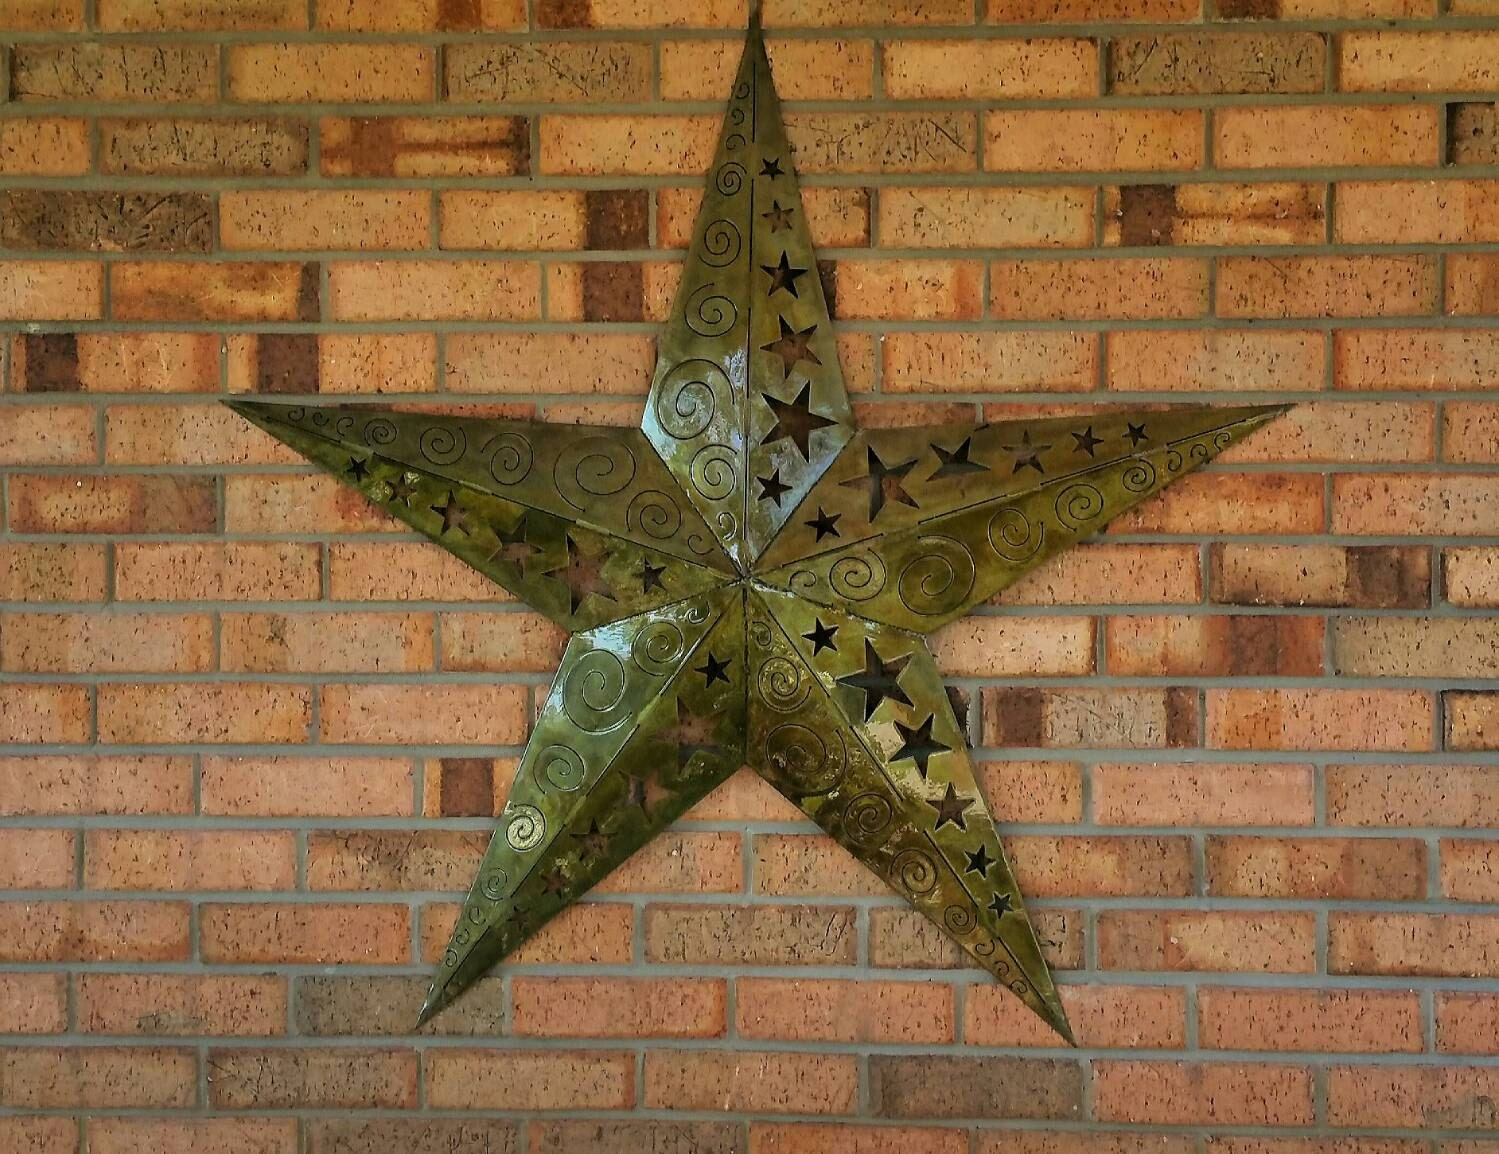 Large 3d metal star metal wall decor handmade wall decor for Outdoor garden wall decor